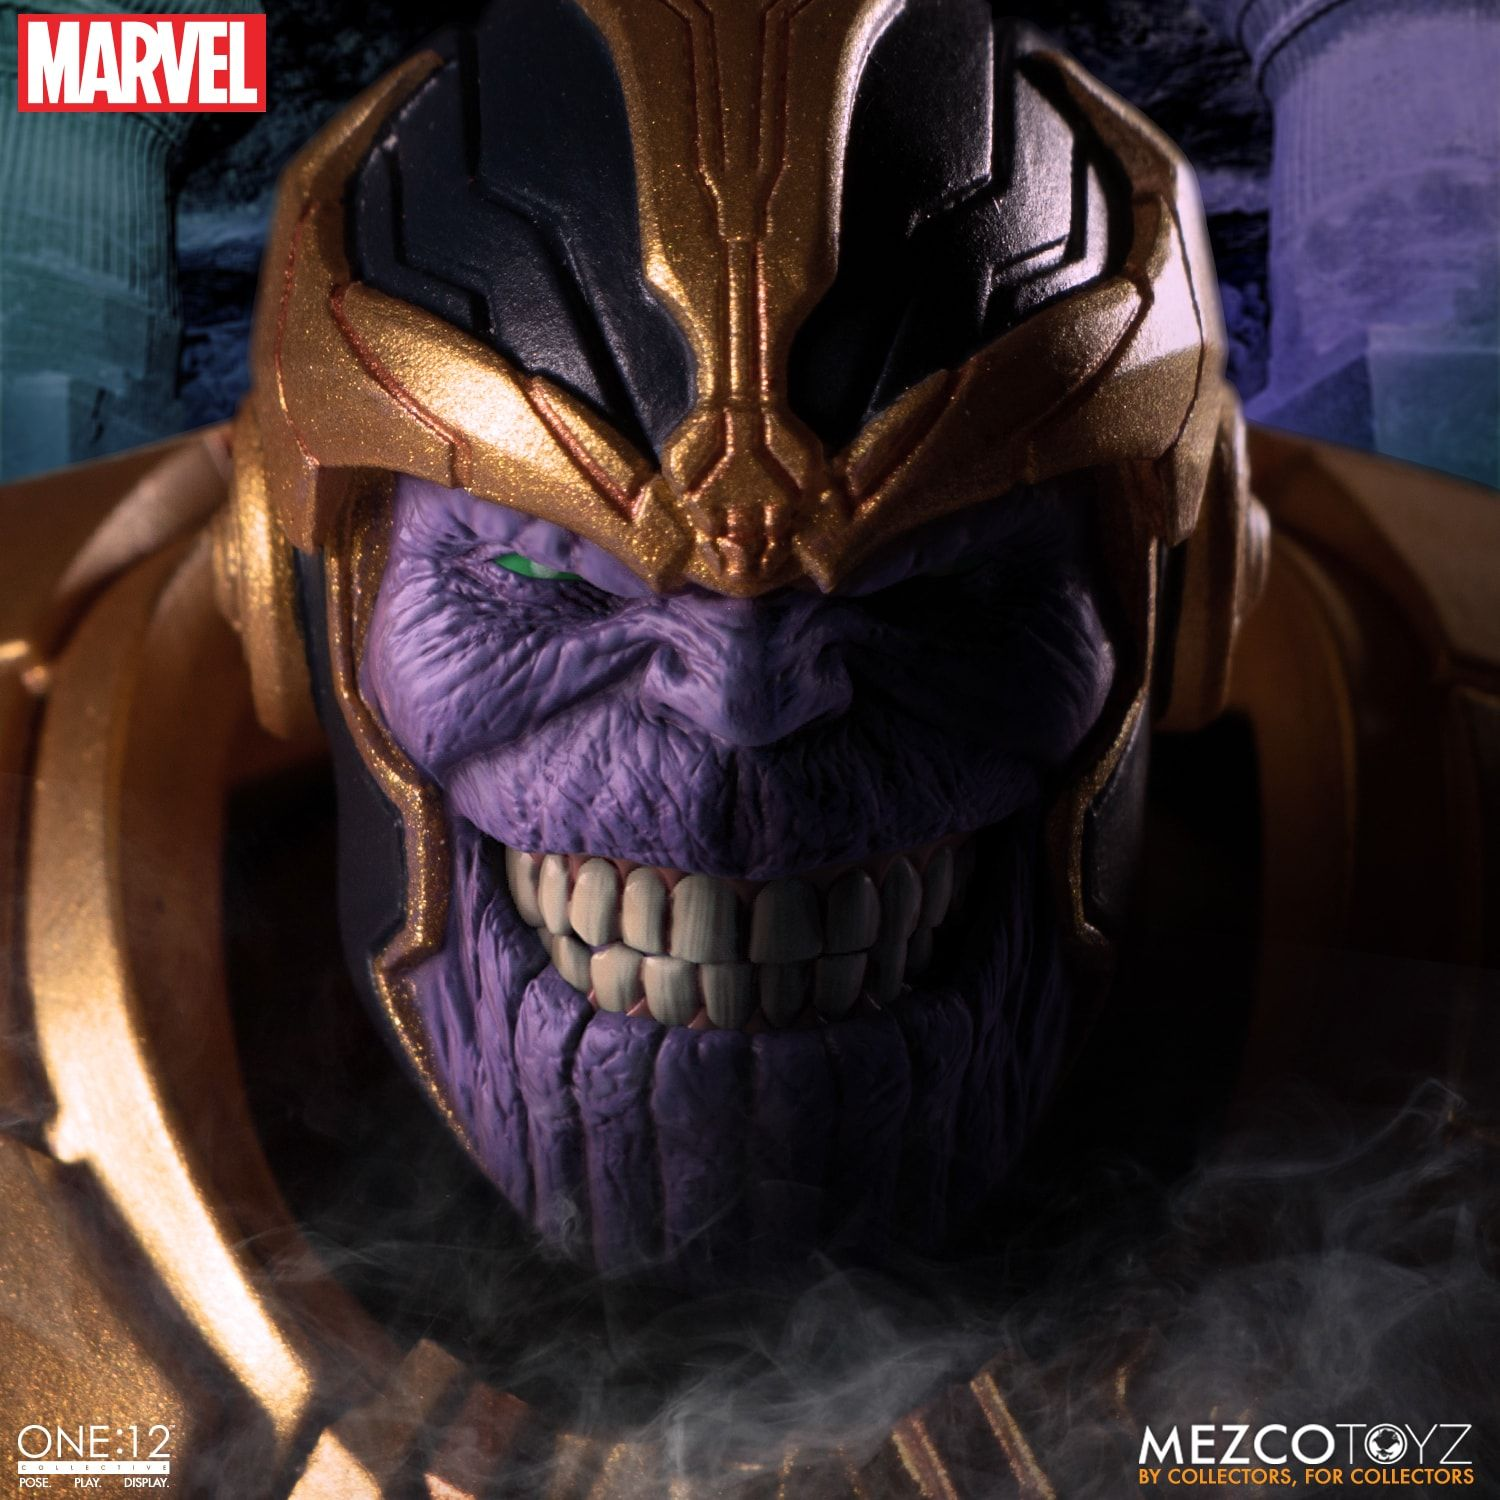 Mezco - One:12 Collective - Marvel - Thanos